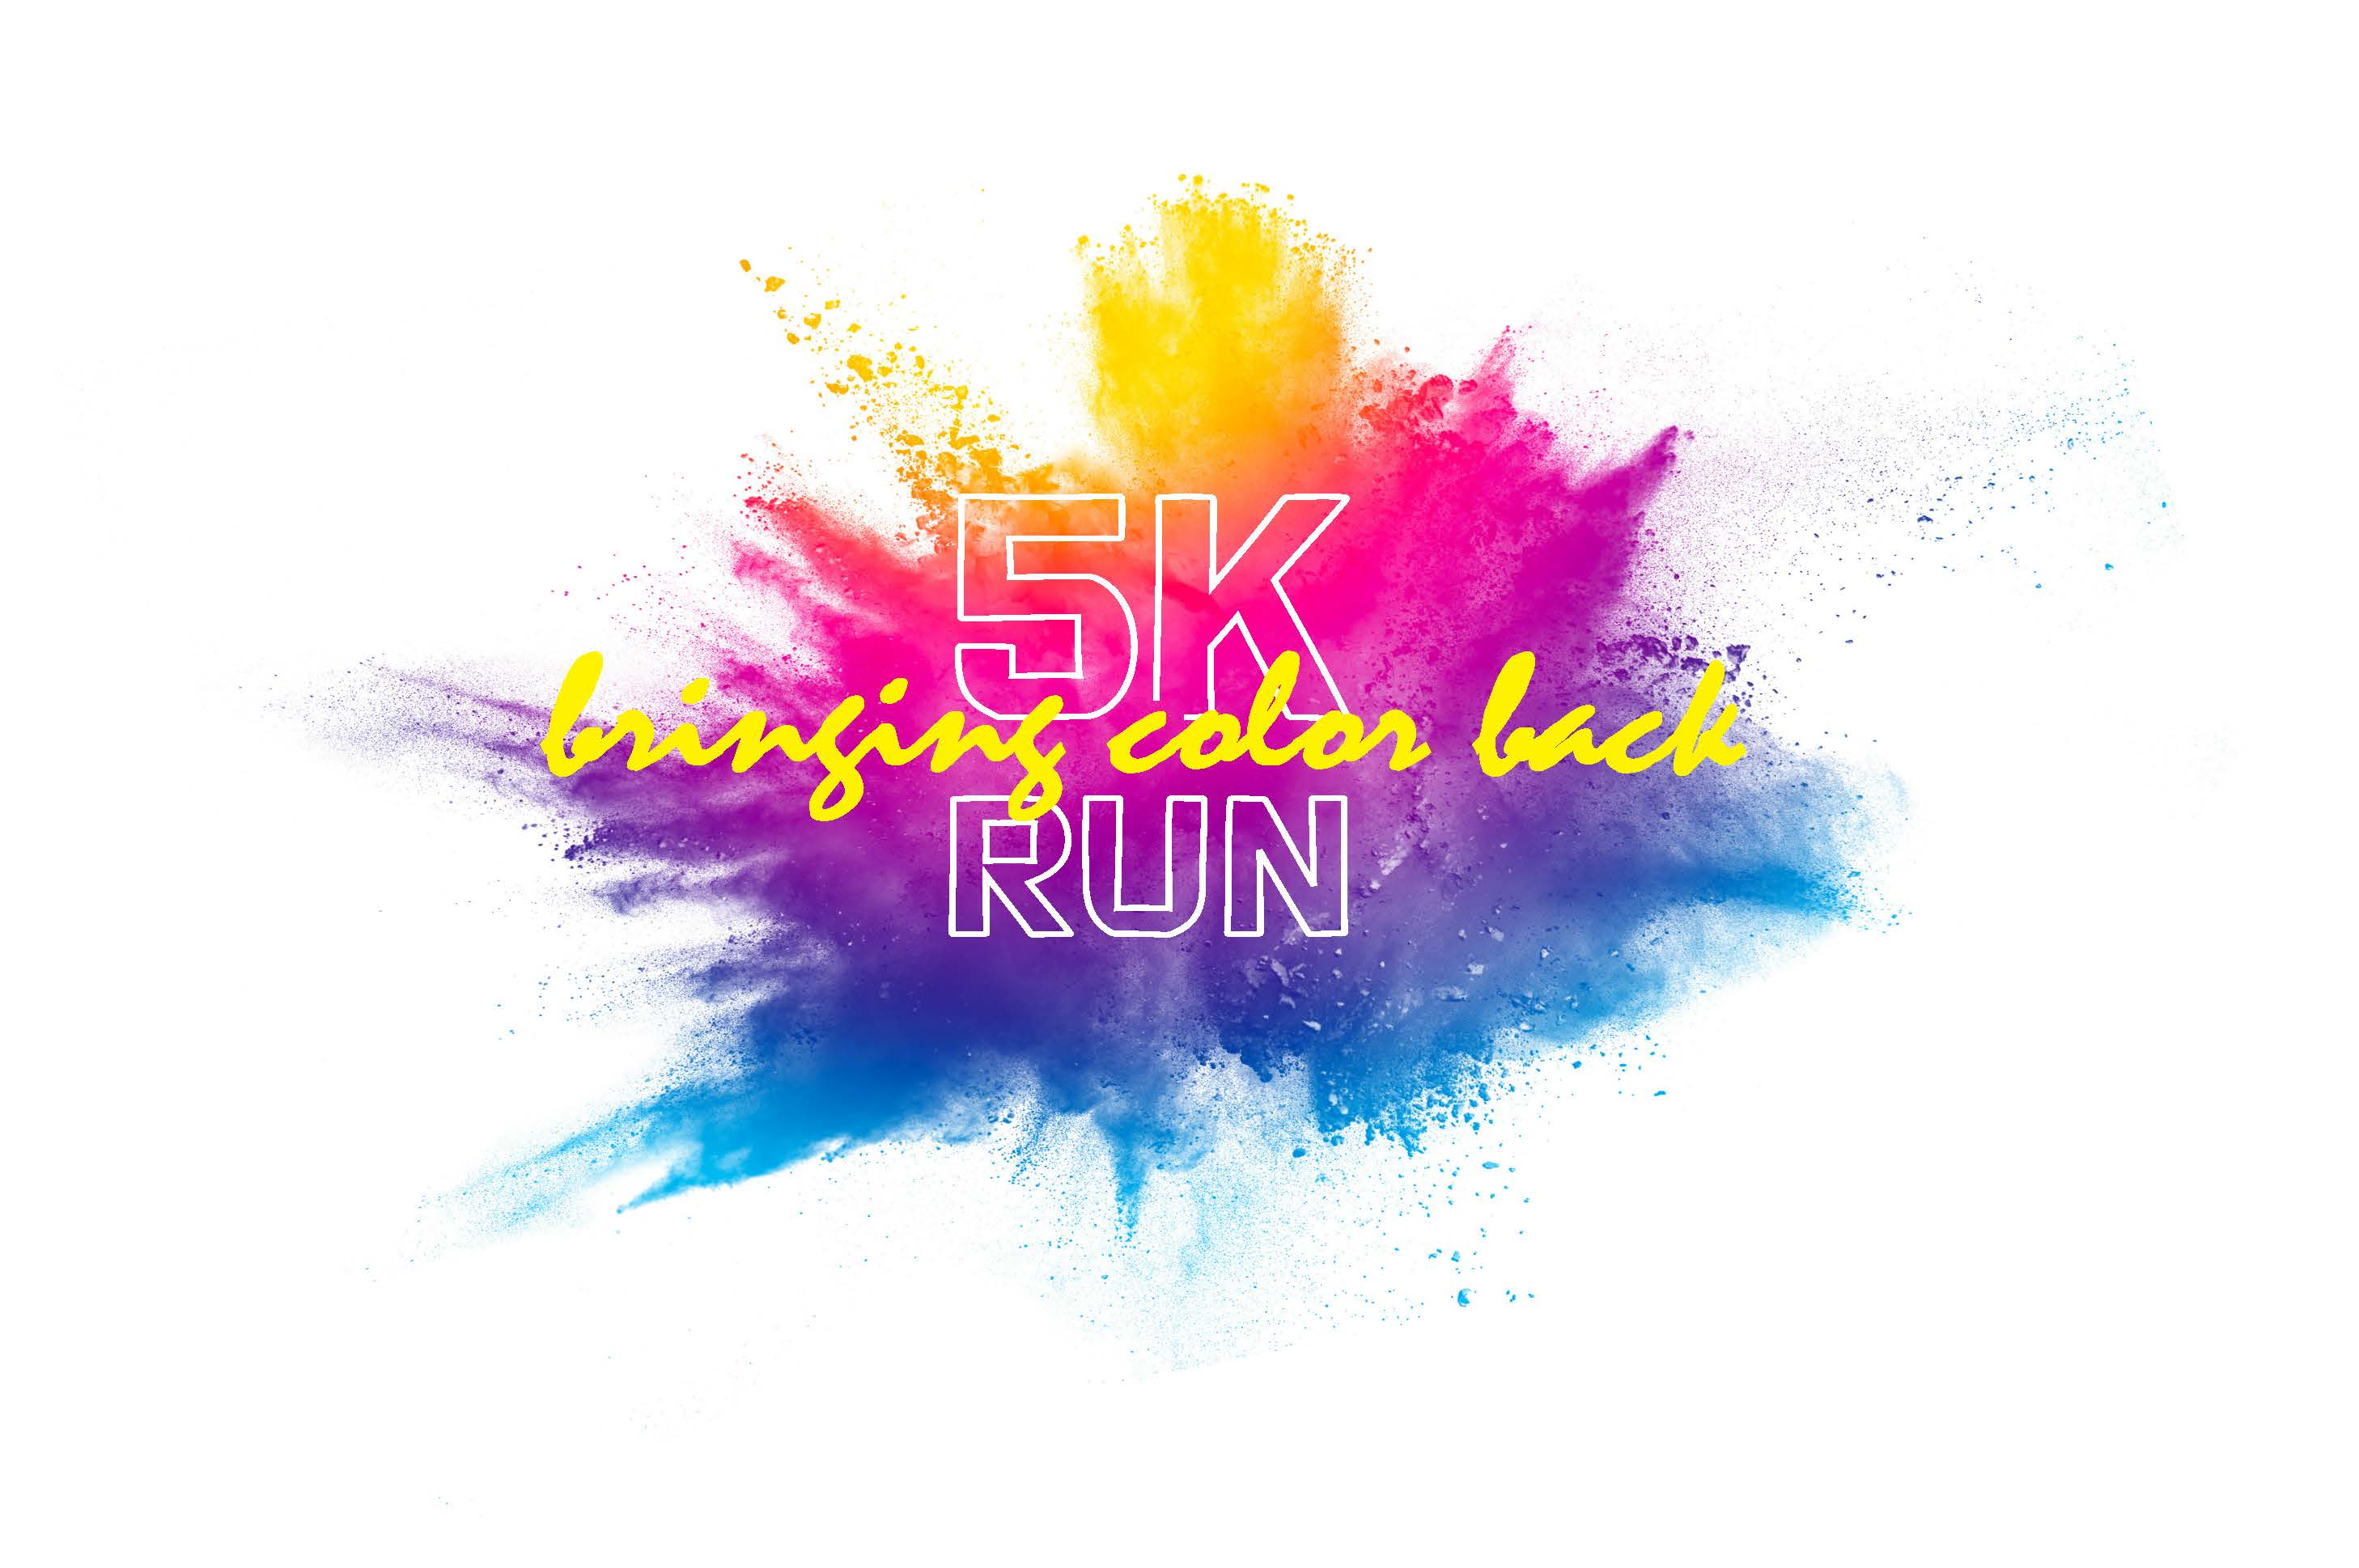 The Bring Color Back 5K run logo., which is a rainbow splash of color.